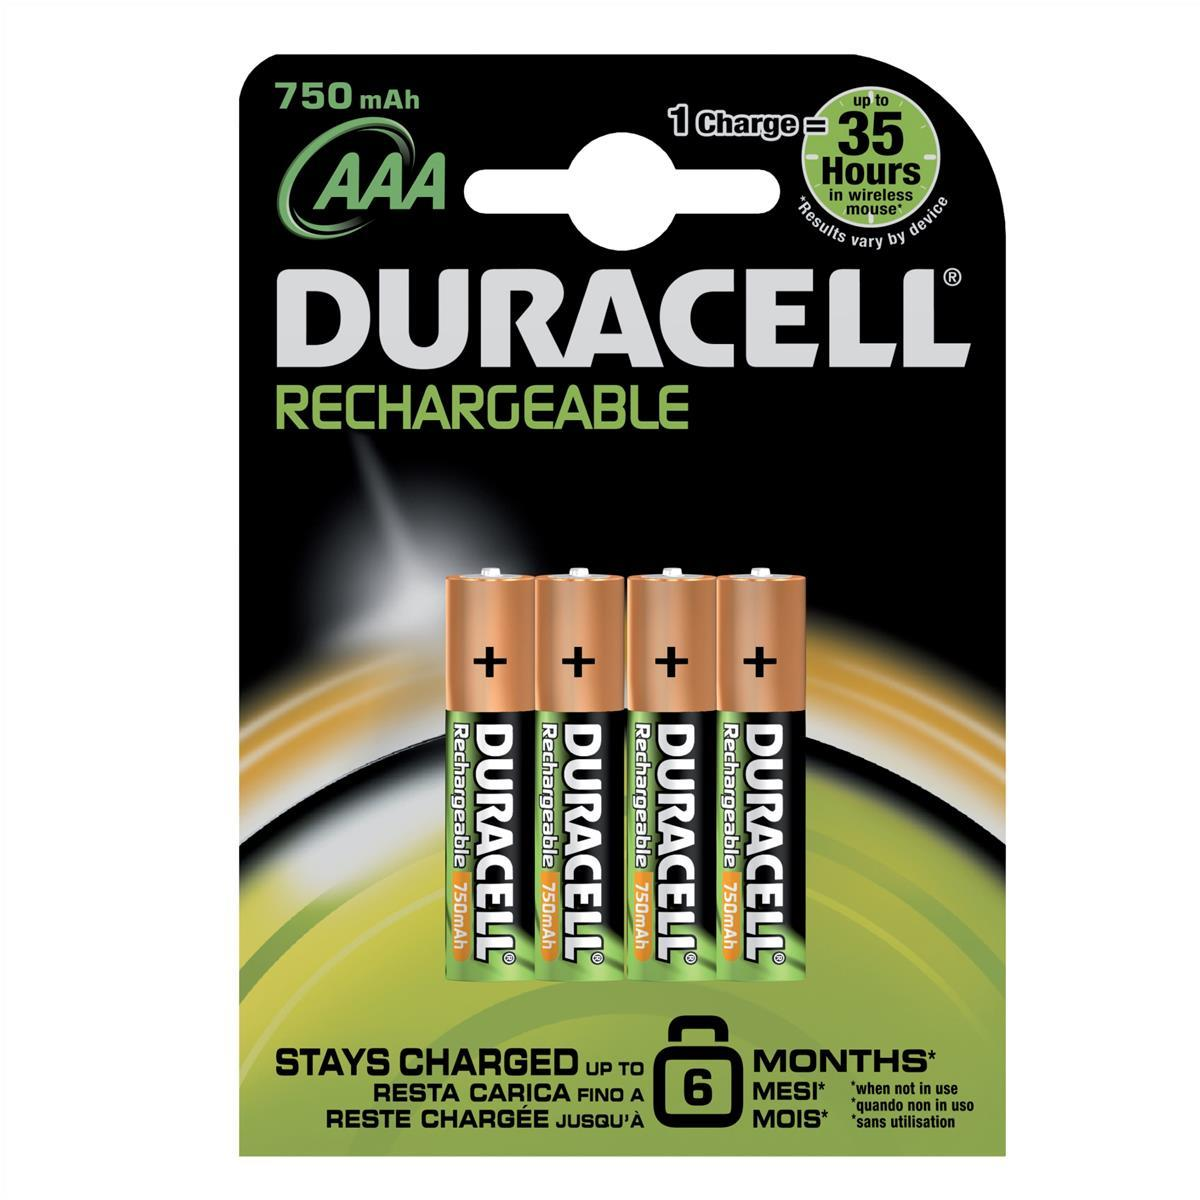 Image for Duracell Battery Rechargeable Accu NiMH 750mAh AAA Ref 81364750 [Pack 4]